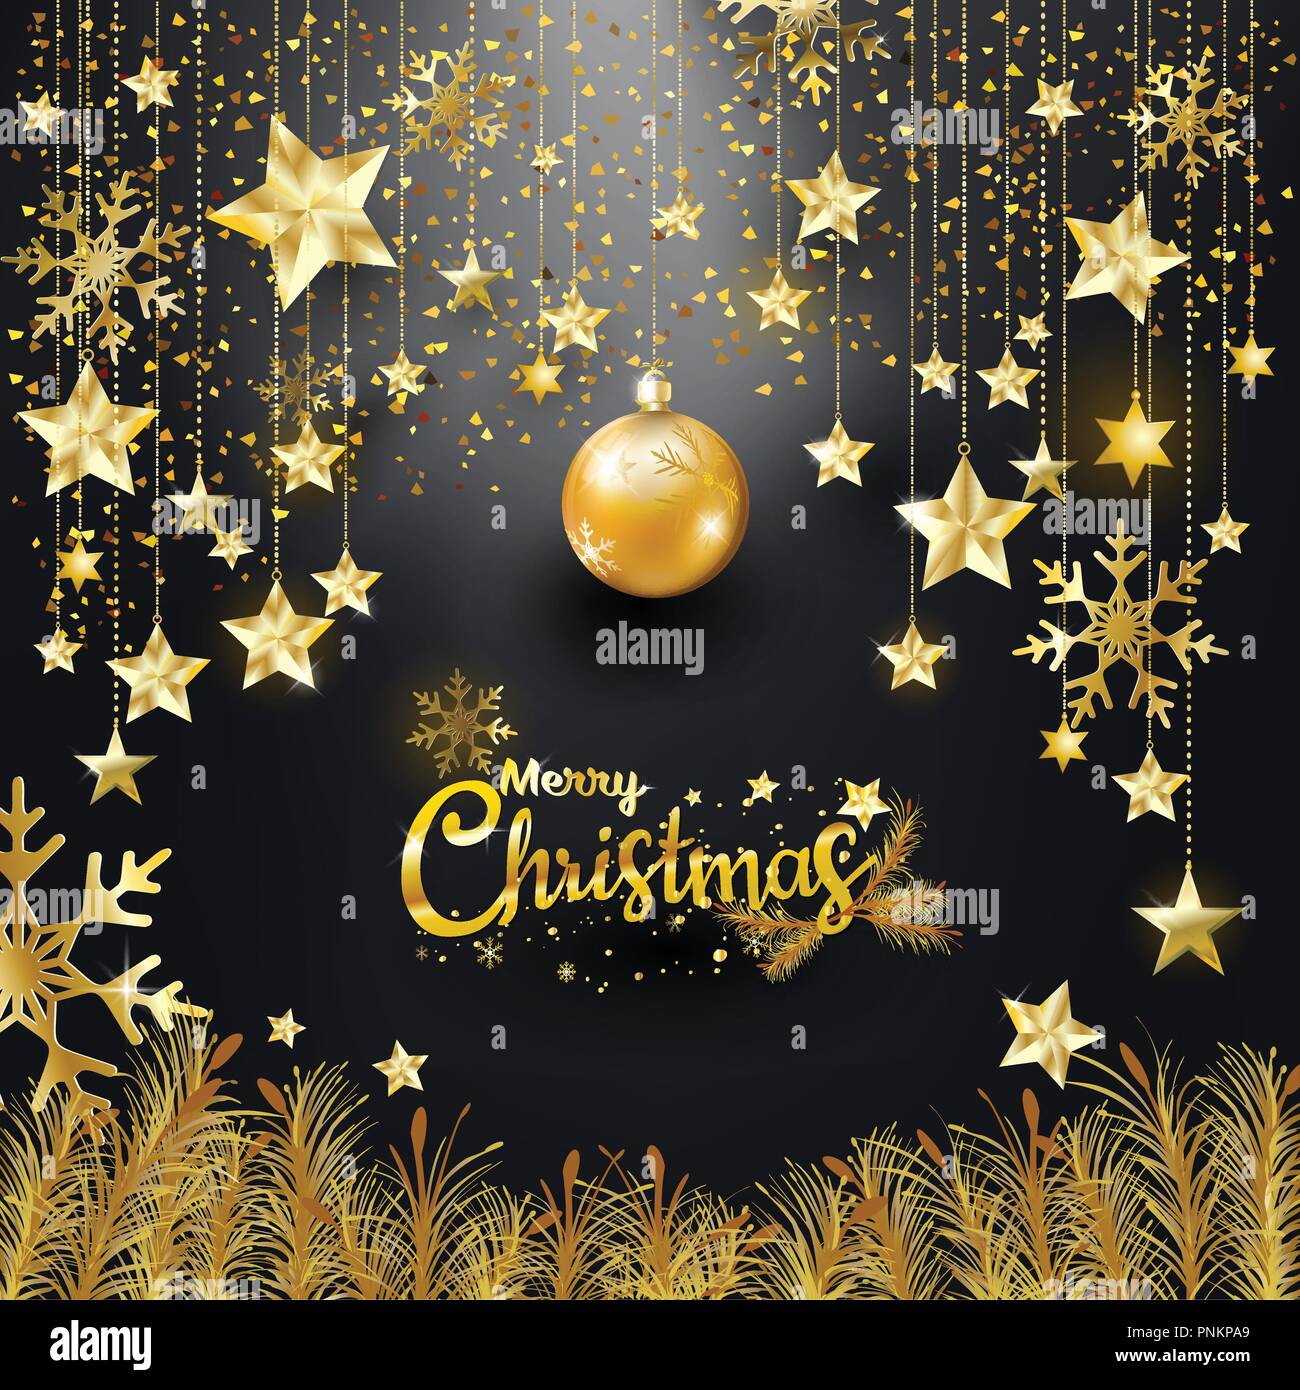 gold glitter merry christmas and happy new year typography luxury elegance design for christmas banner invitation star snowflakes hanging with diam